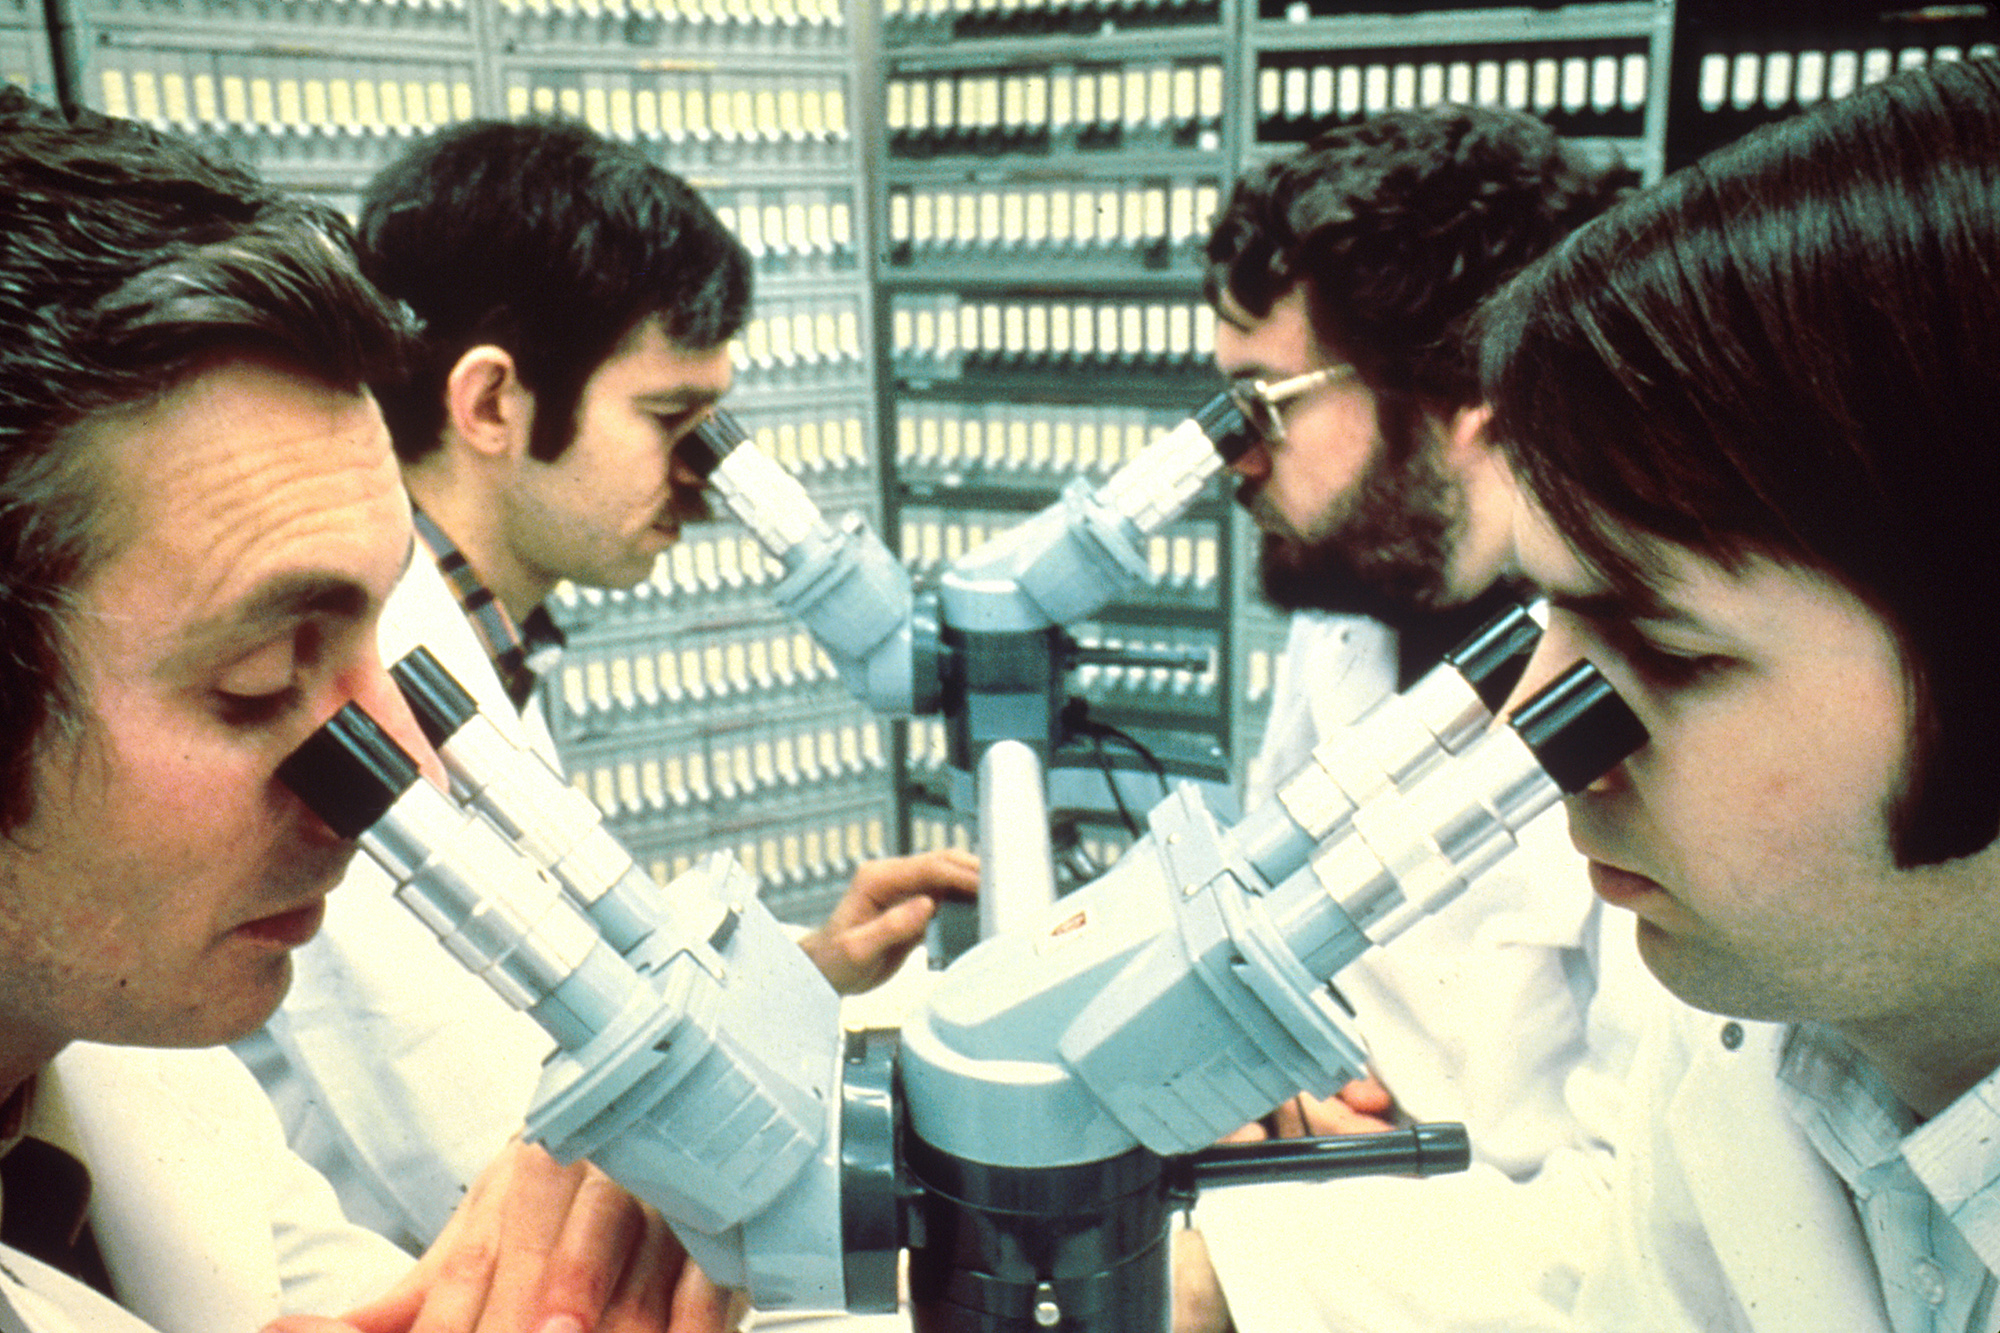 Pathologists_looking_into_microscopes